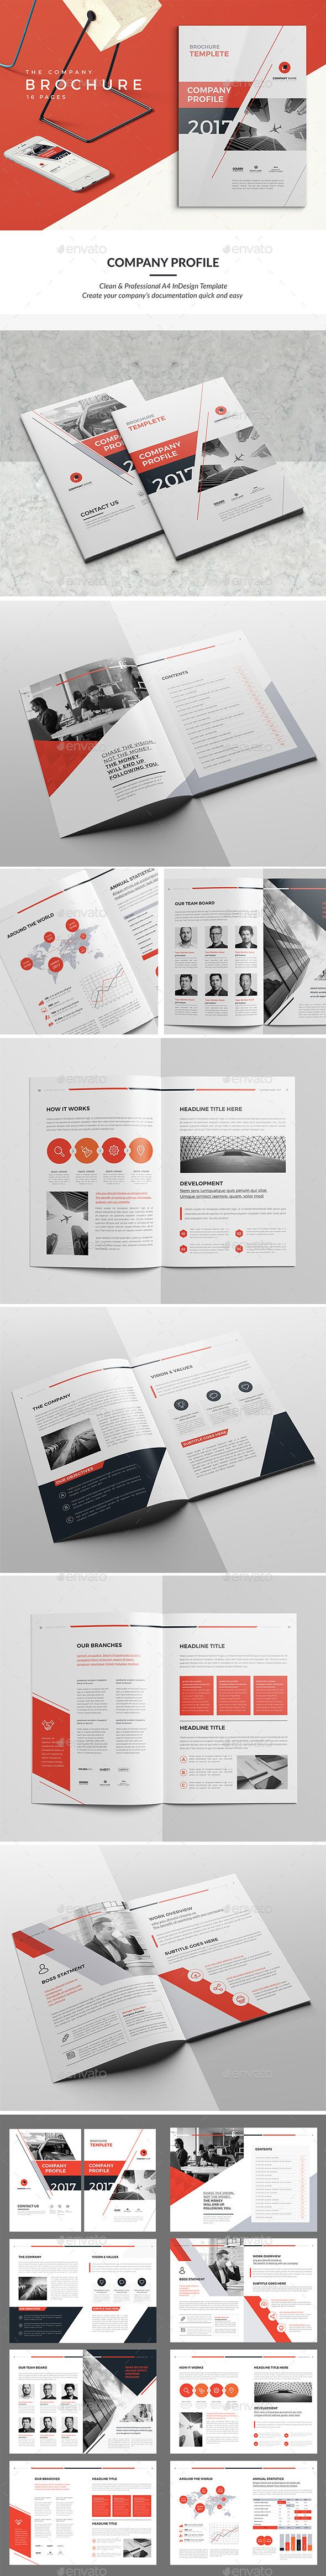 27 best Brochures images on Pinterest | Editorial design, Graph ...